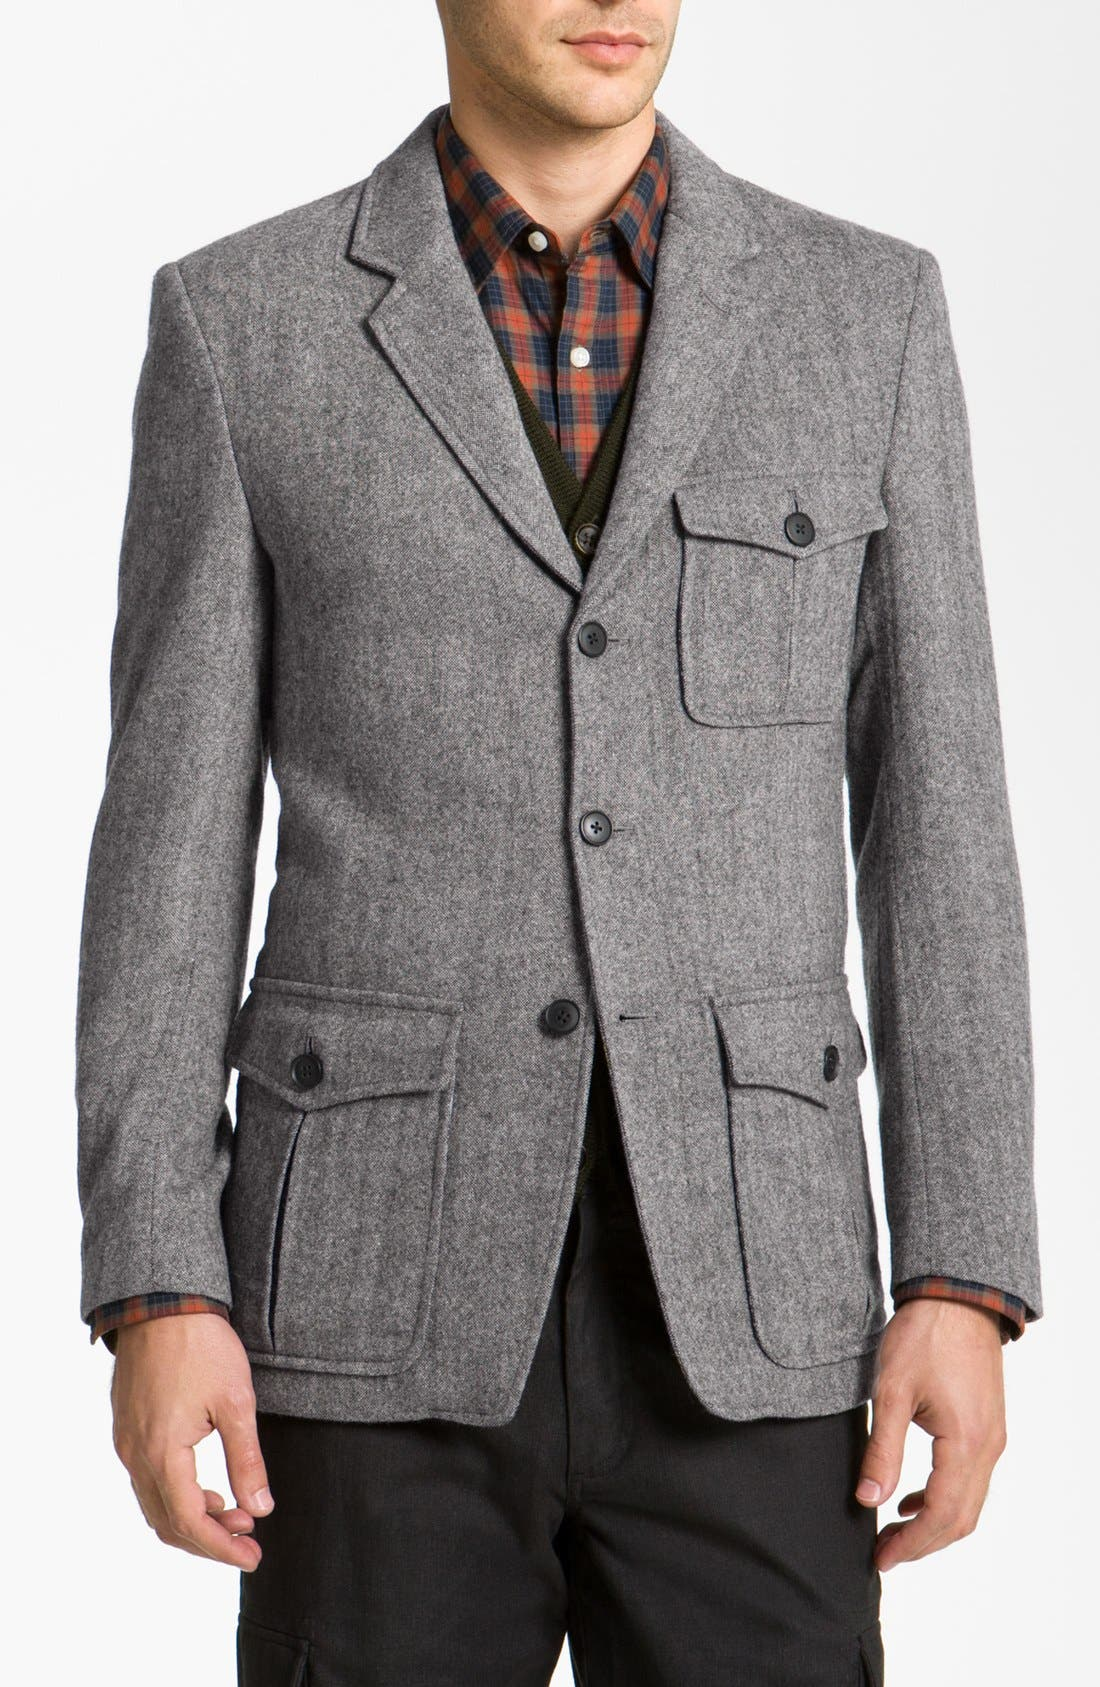 Alternate Image 1 Selected - Wallin & Bros. 'Hunting' Wool Blend Sportcoat